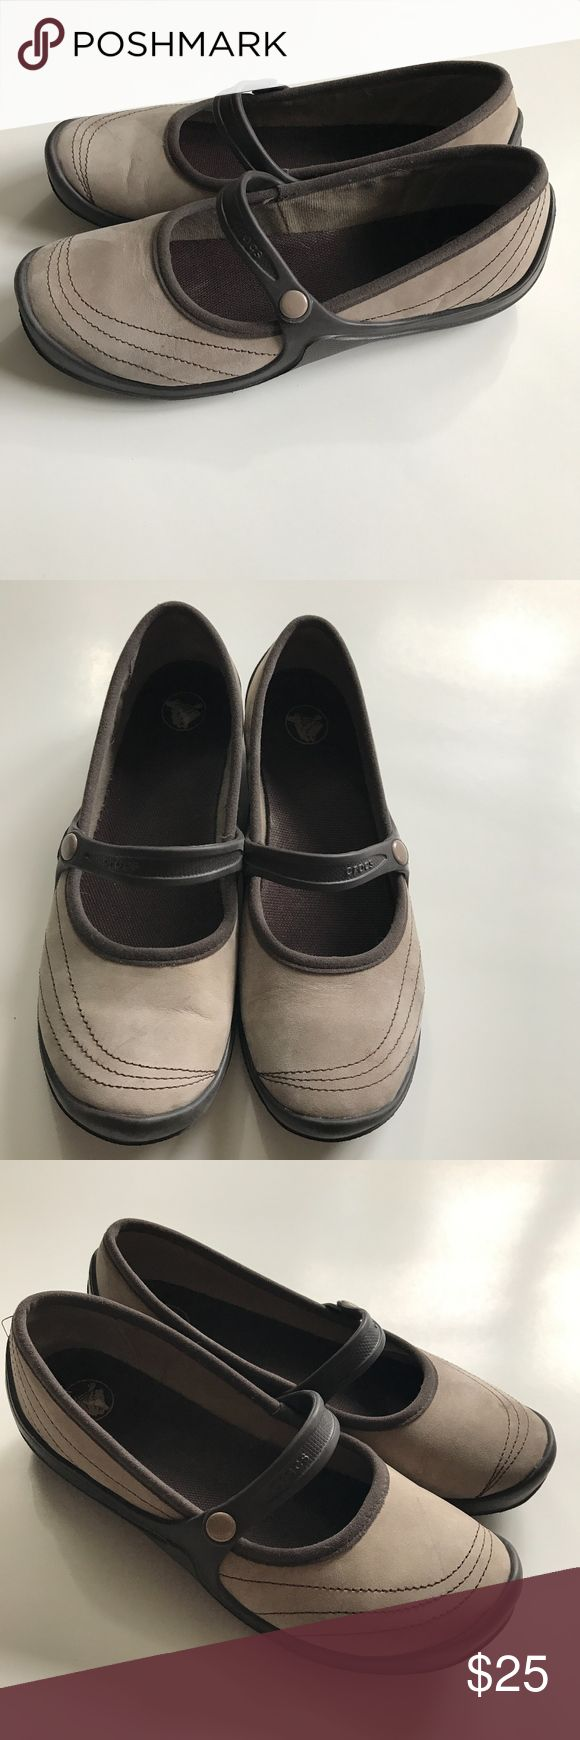 Crocs Tan Brown Mary Jane Slip On Shoes Size 7W Comfy cute slip on shoes. Normal wear. CROCS Shoes